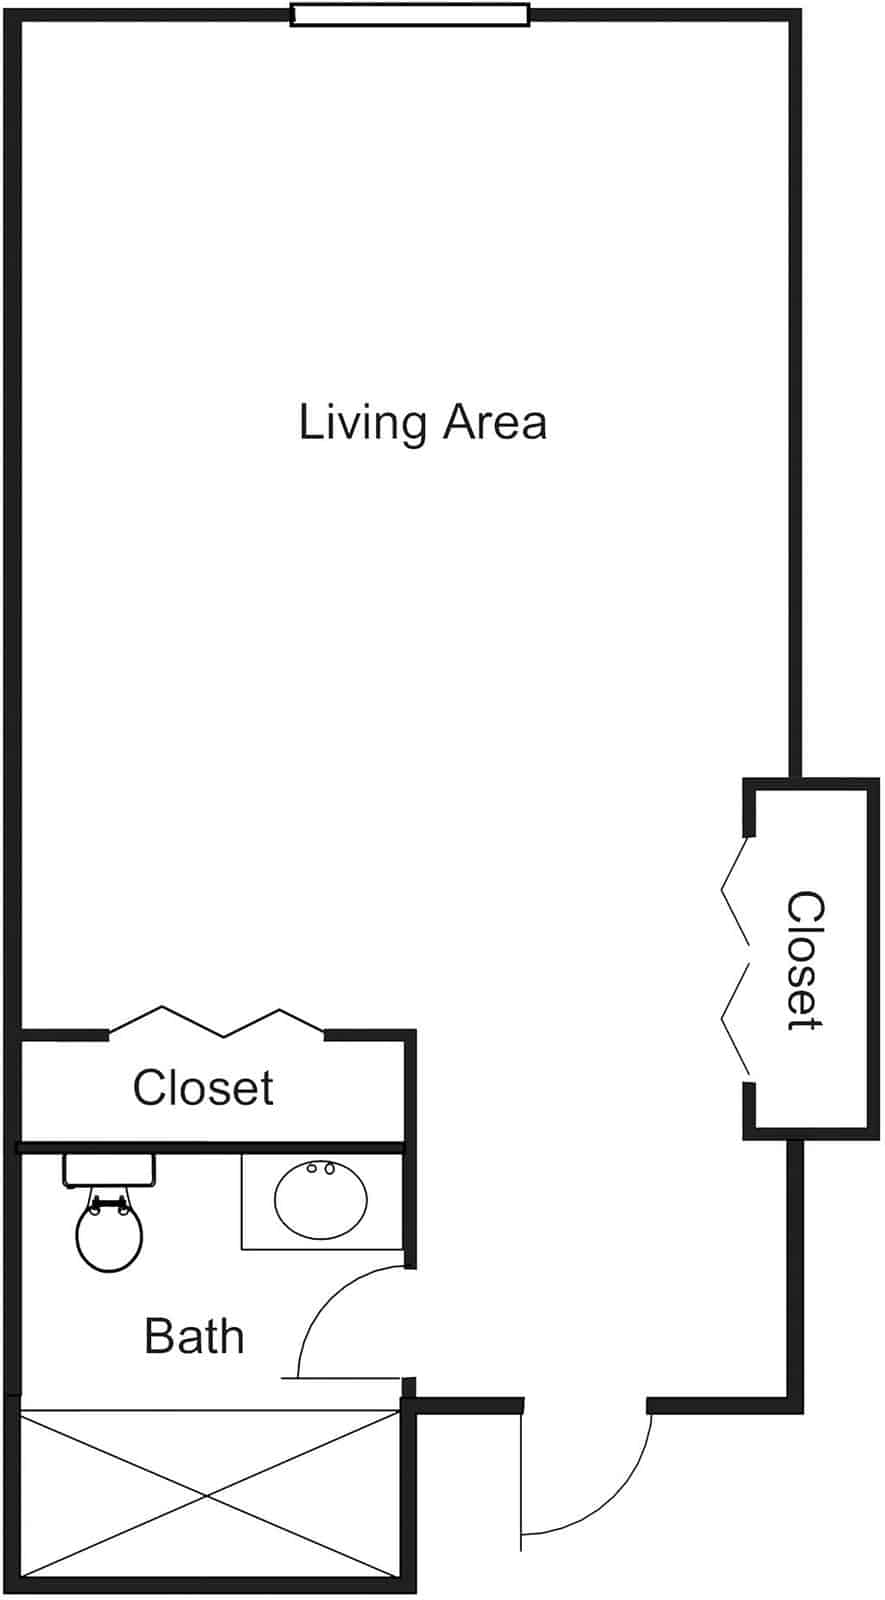 Large Studio Assisted Living Apartment With 322 Sq. Ft.